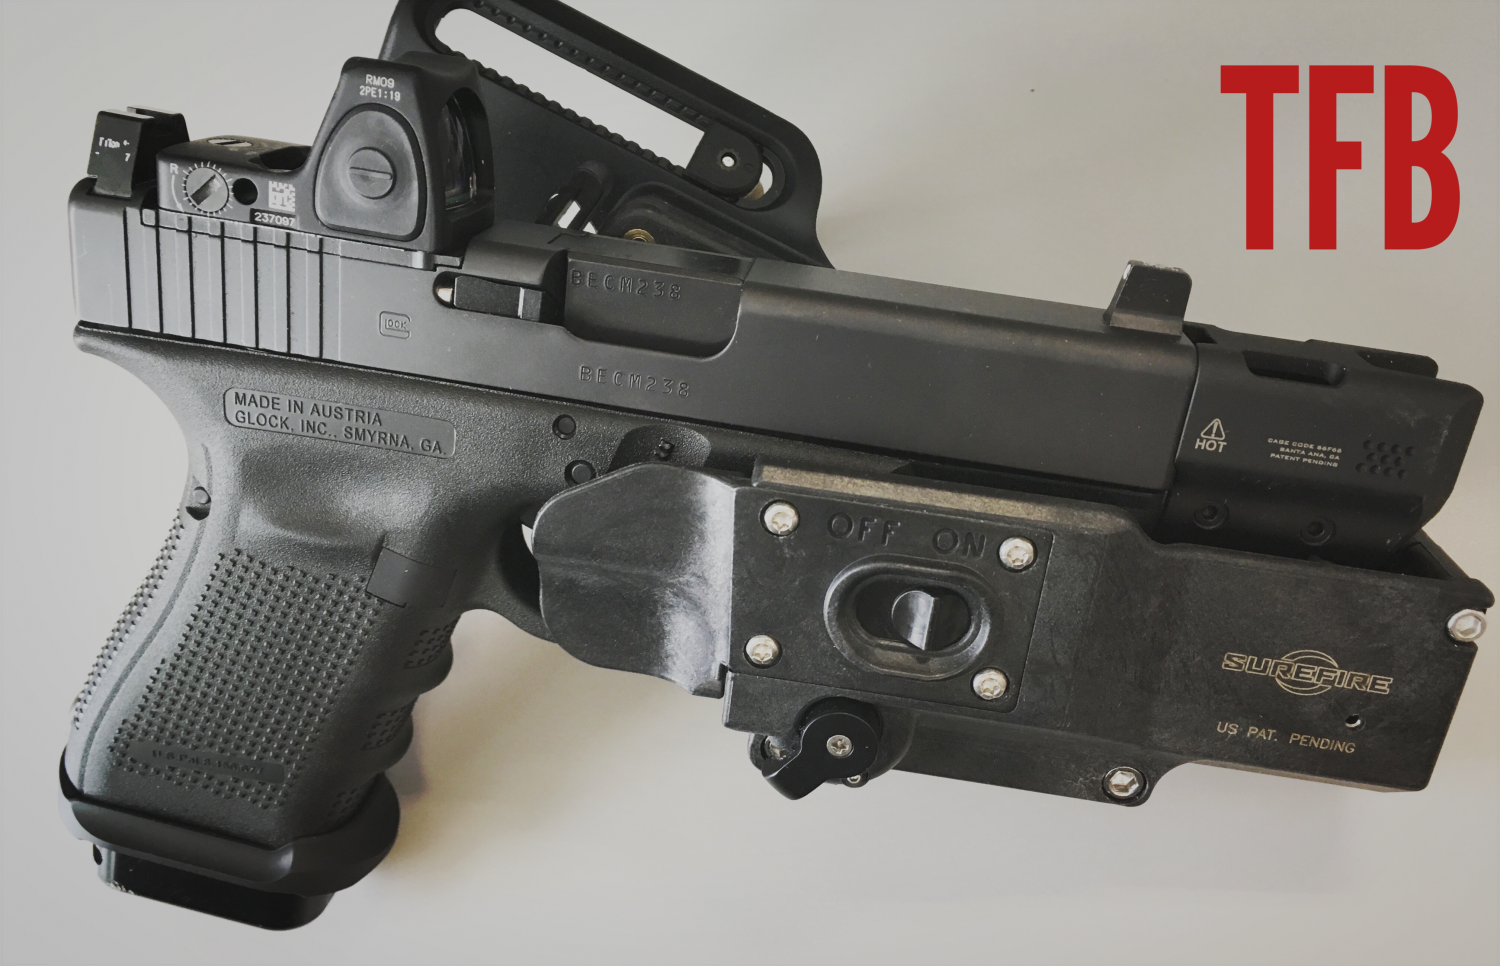 Surefire Masterfire Holster With X300 Weaponlight Review